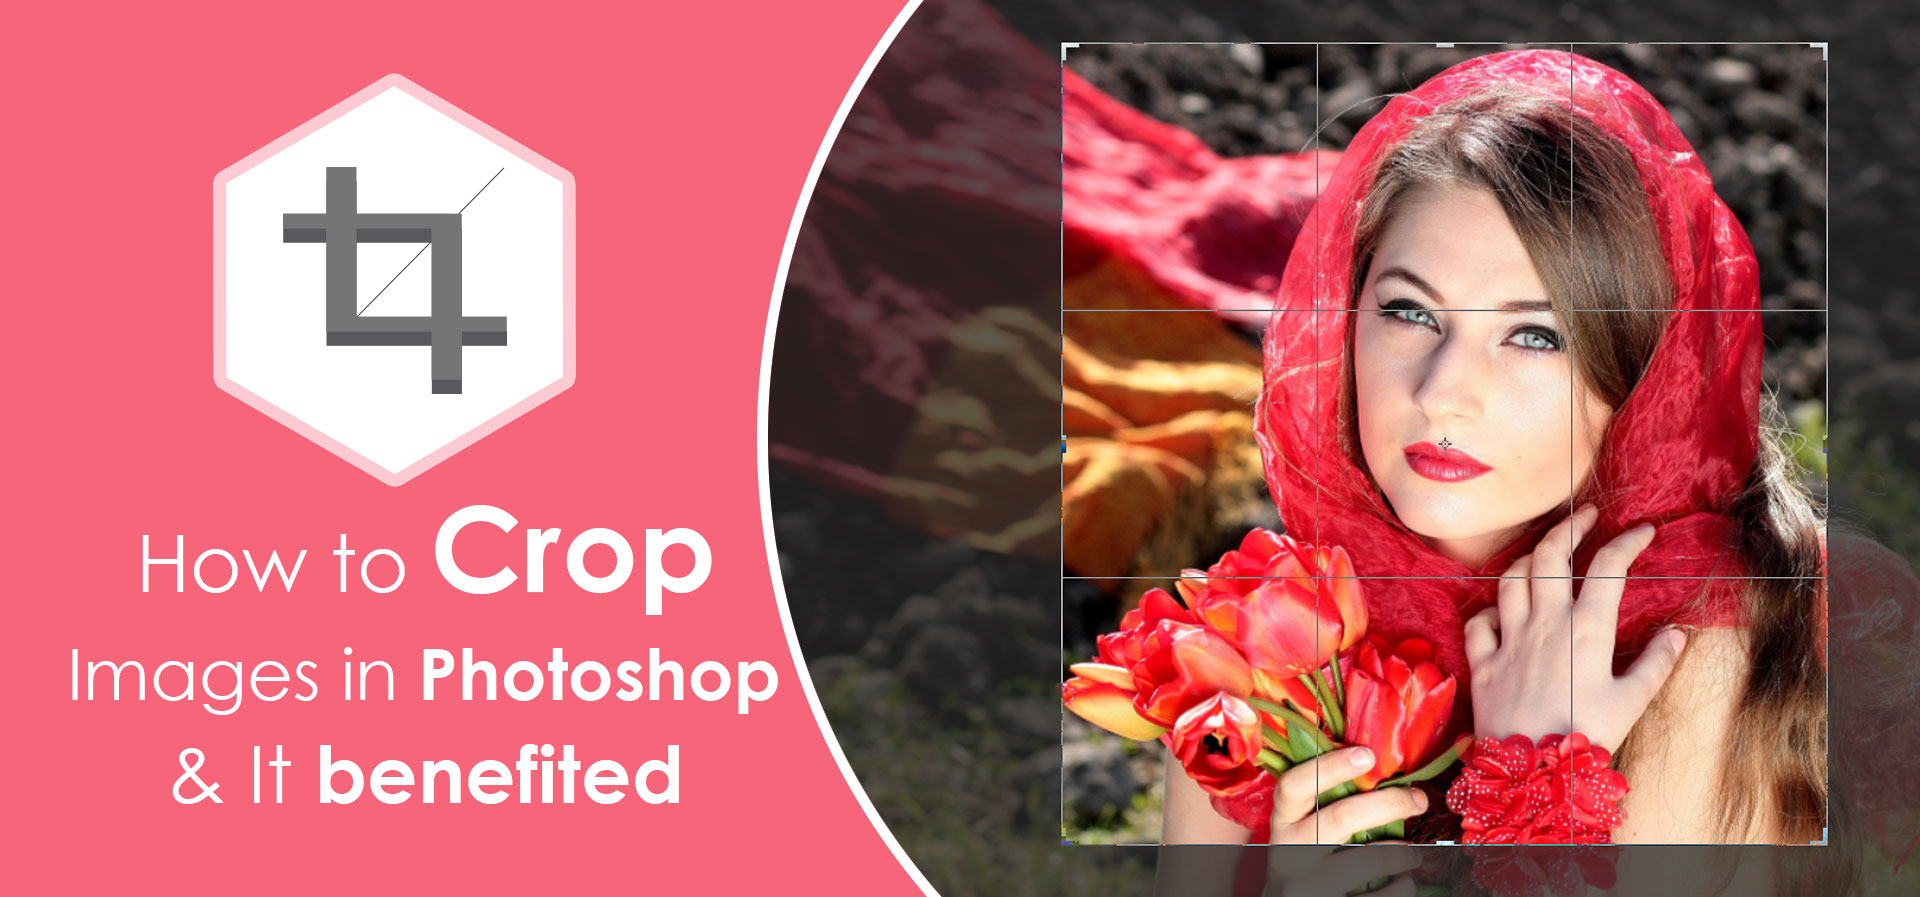 How to Crop Images in Photoshop & It benefited.